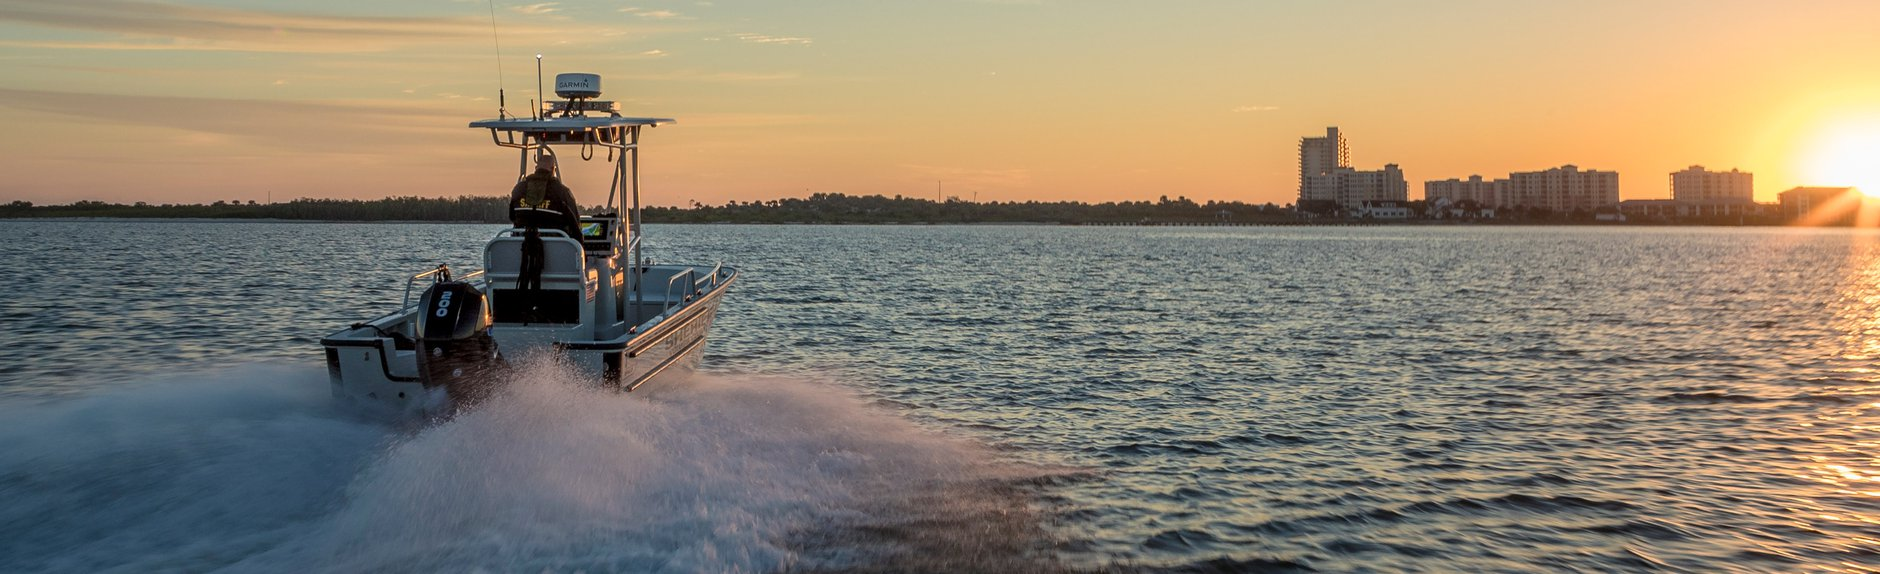 Sea Pro 200 - 300 HP Outboards